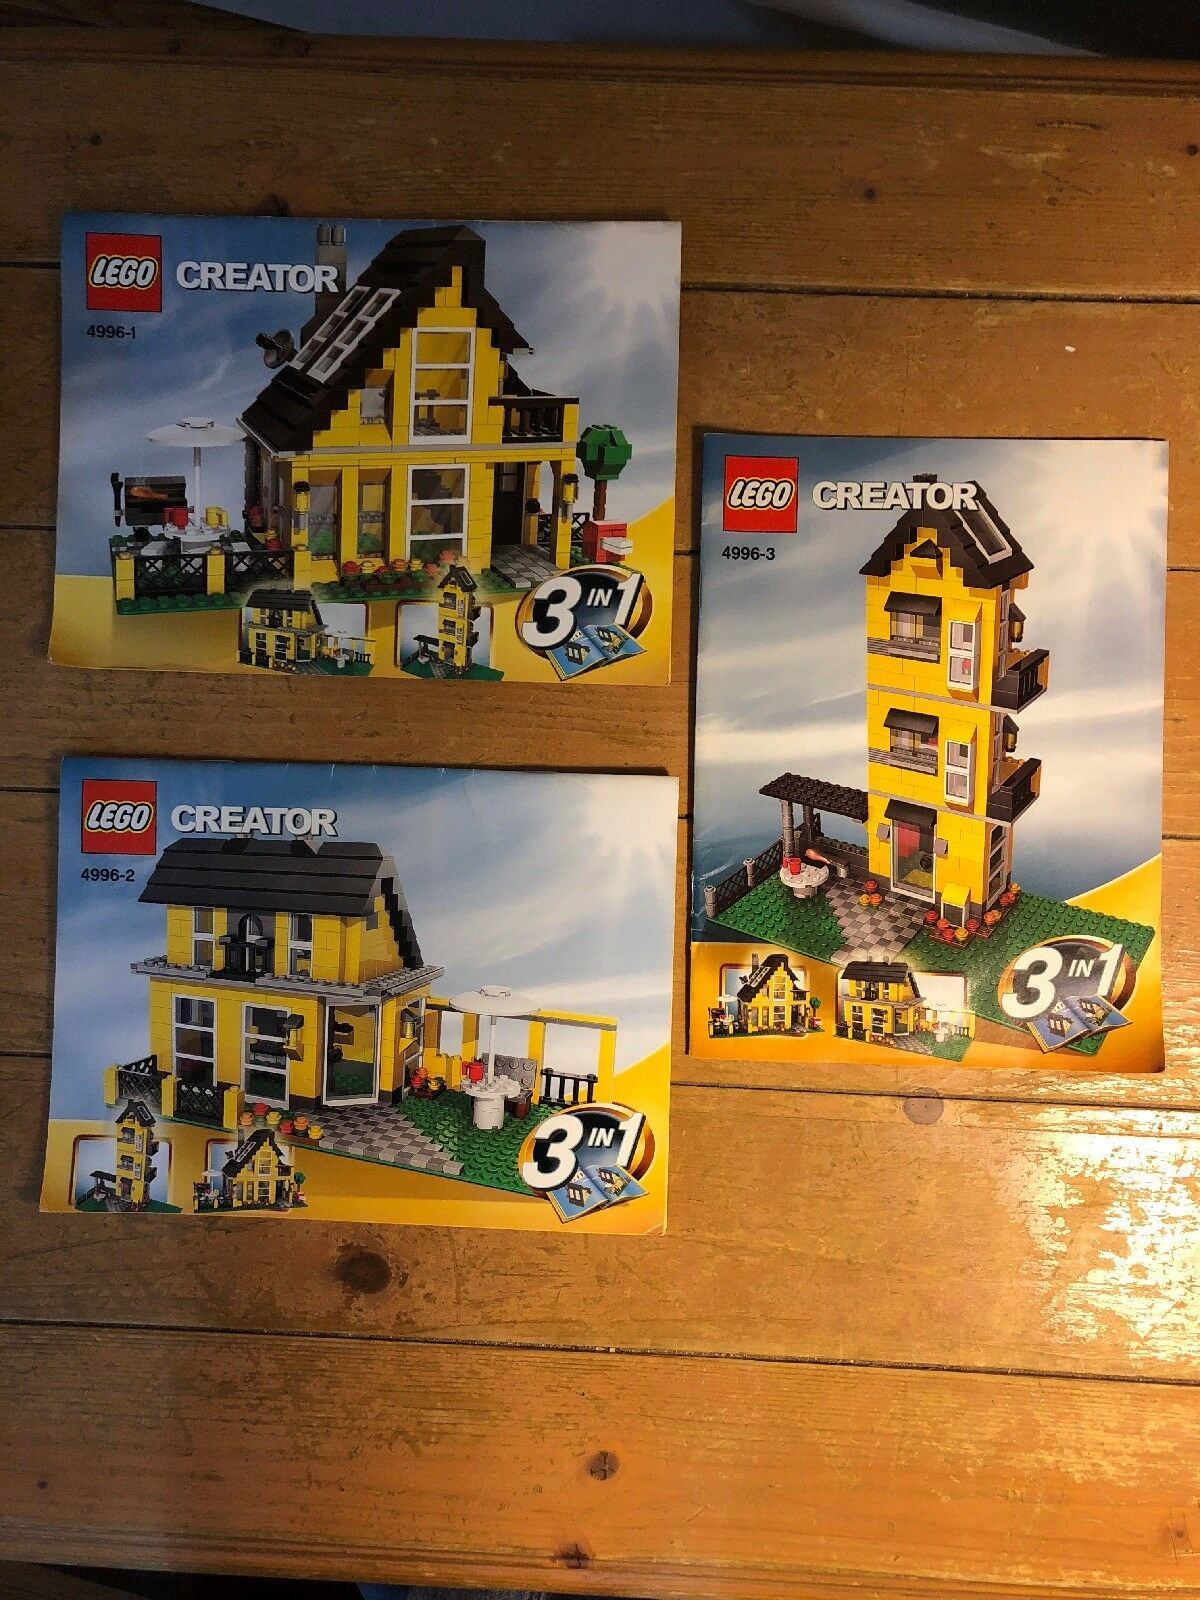 LEGO Creator 4996 Beach House 3 in 1 3 Instruction Manuals Retired